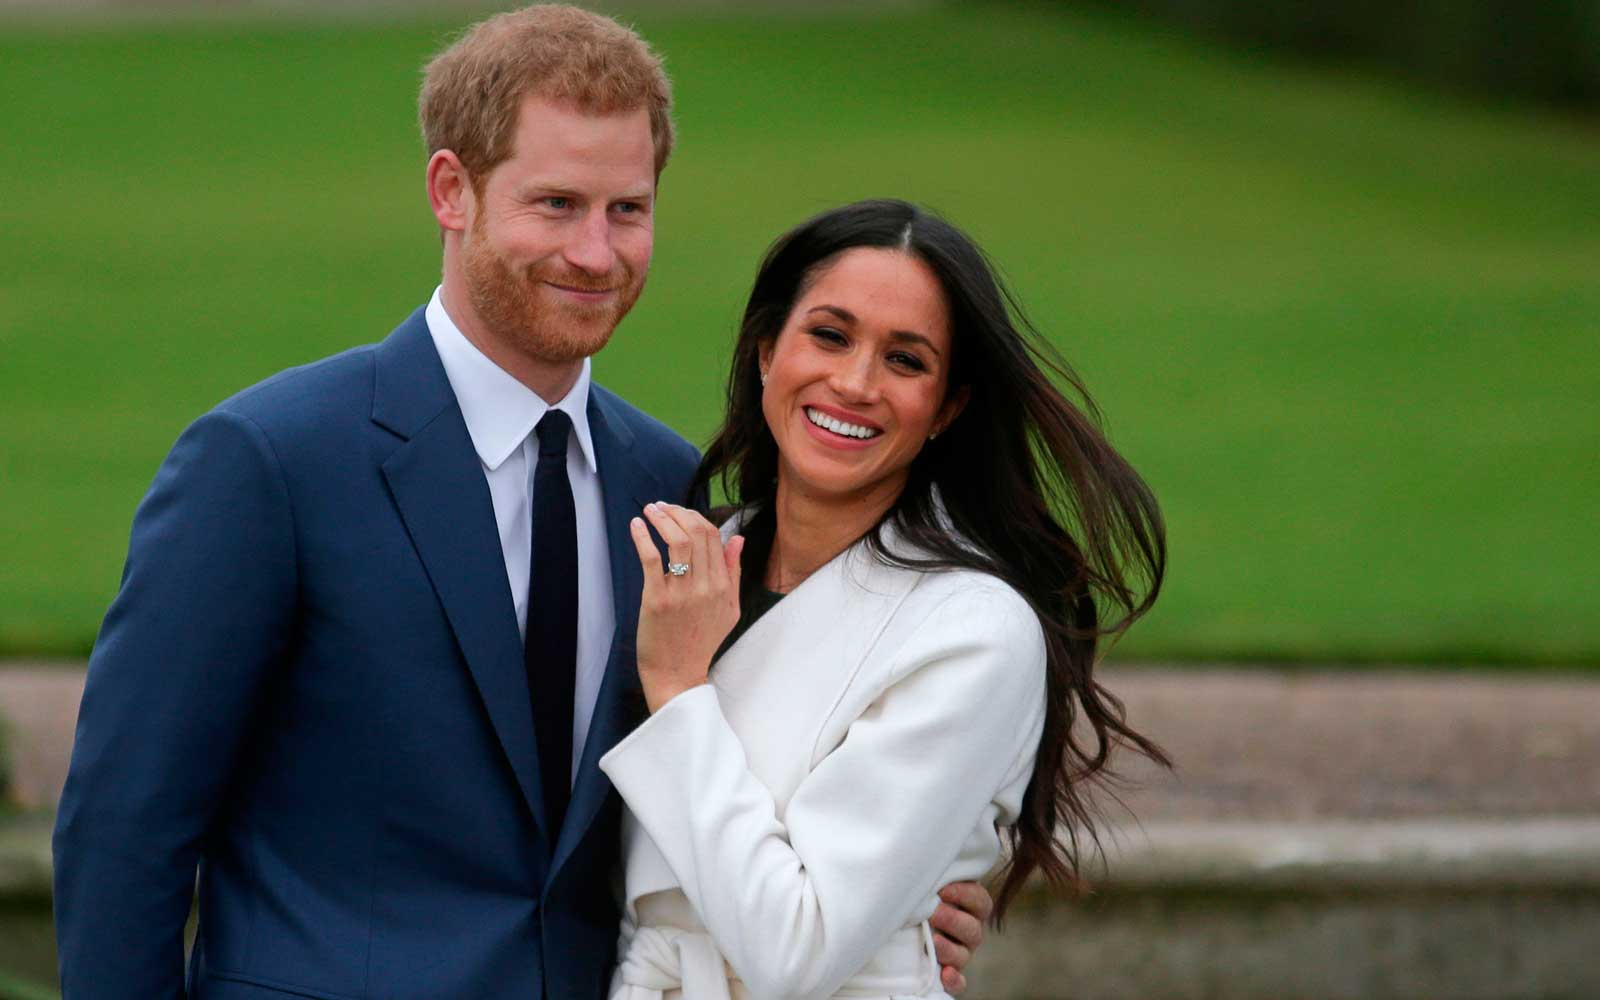 Britain's Prince Harry stands with his fiancée US actress Meghan Markle as she shows off her engagement ring whilst they pose for a photograph in the Sunken Garden at Kensington Palace